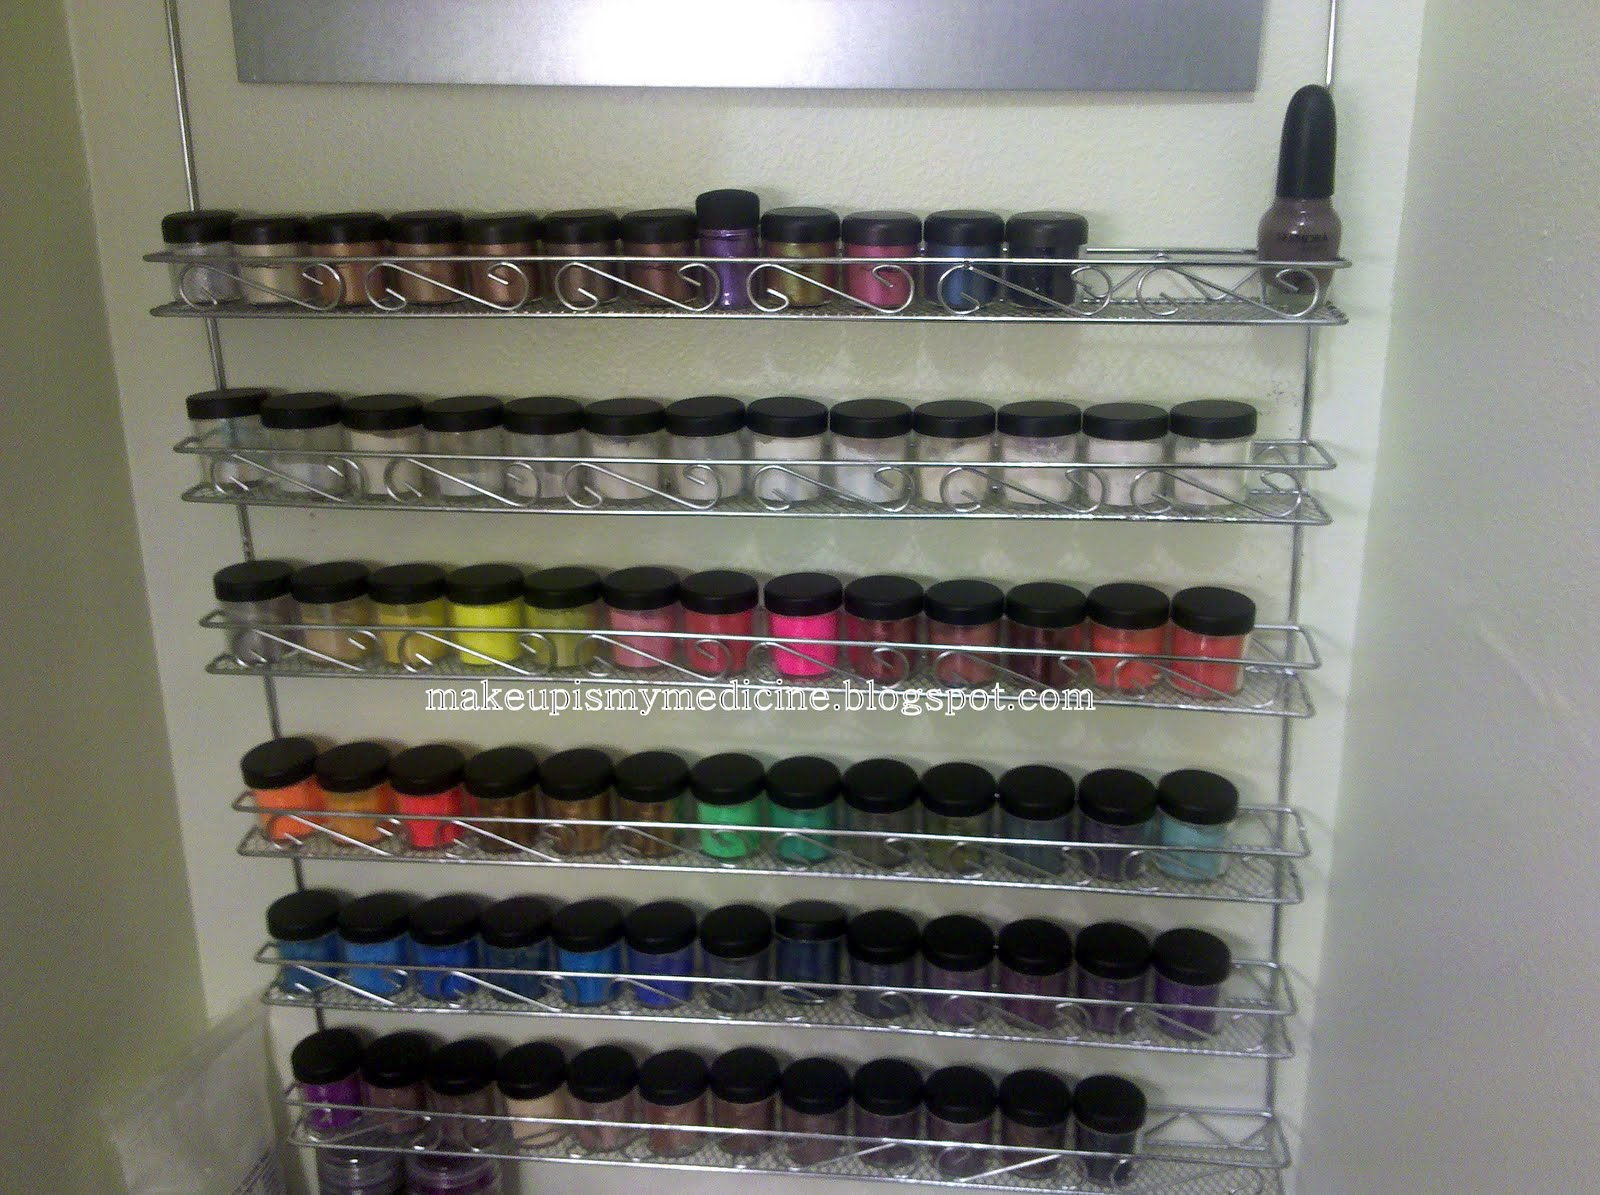 Makeup Is My Medicine: Storage & Organization: Pigments